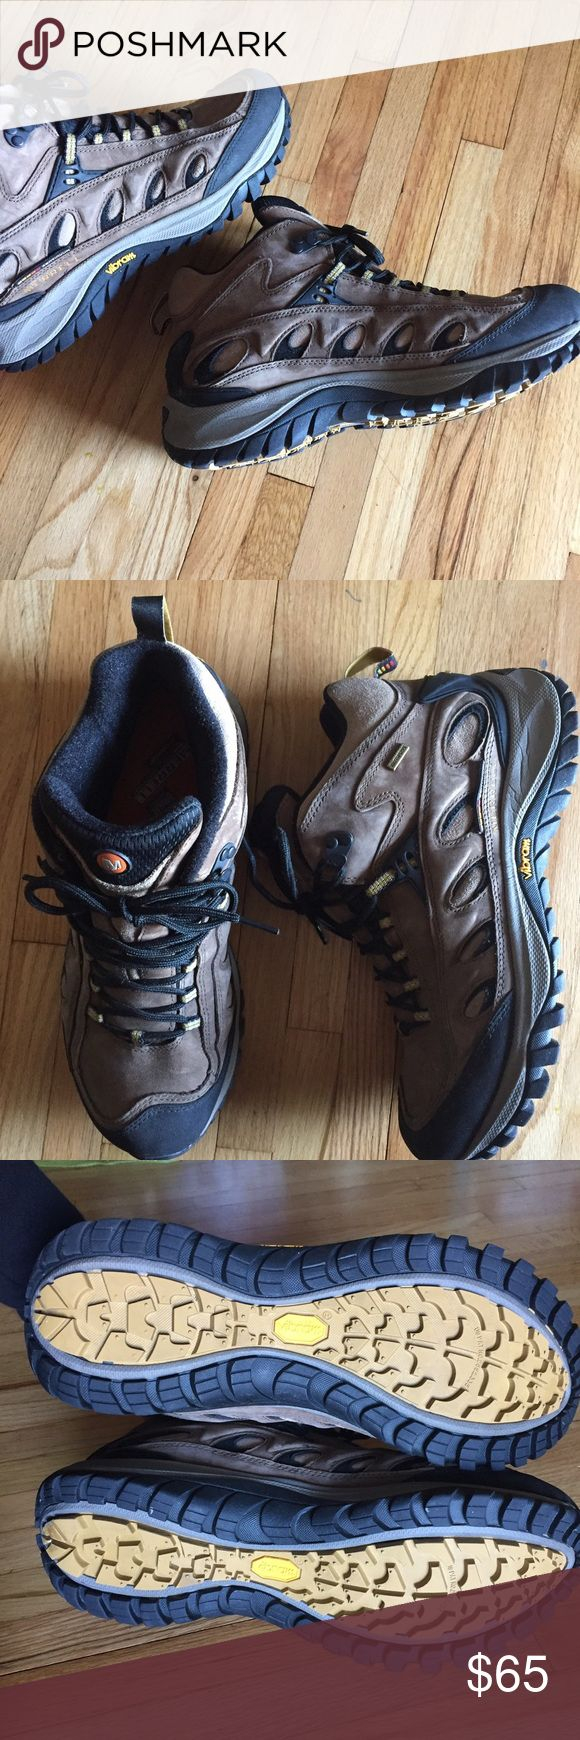 Merrell Radius hiking boots Men's waterproof hiking boots• excellent condition- very lightly worn twice• no damage/ signs of wear Merrell Shoes Rain & Snow Boots